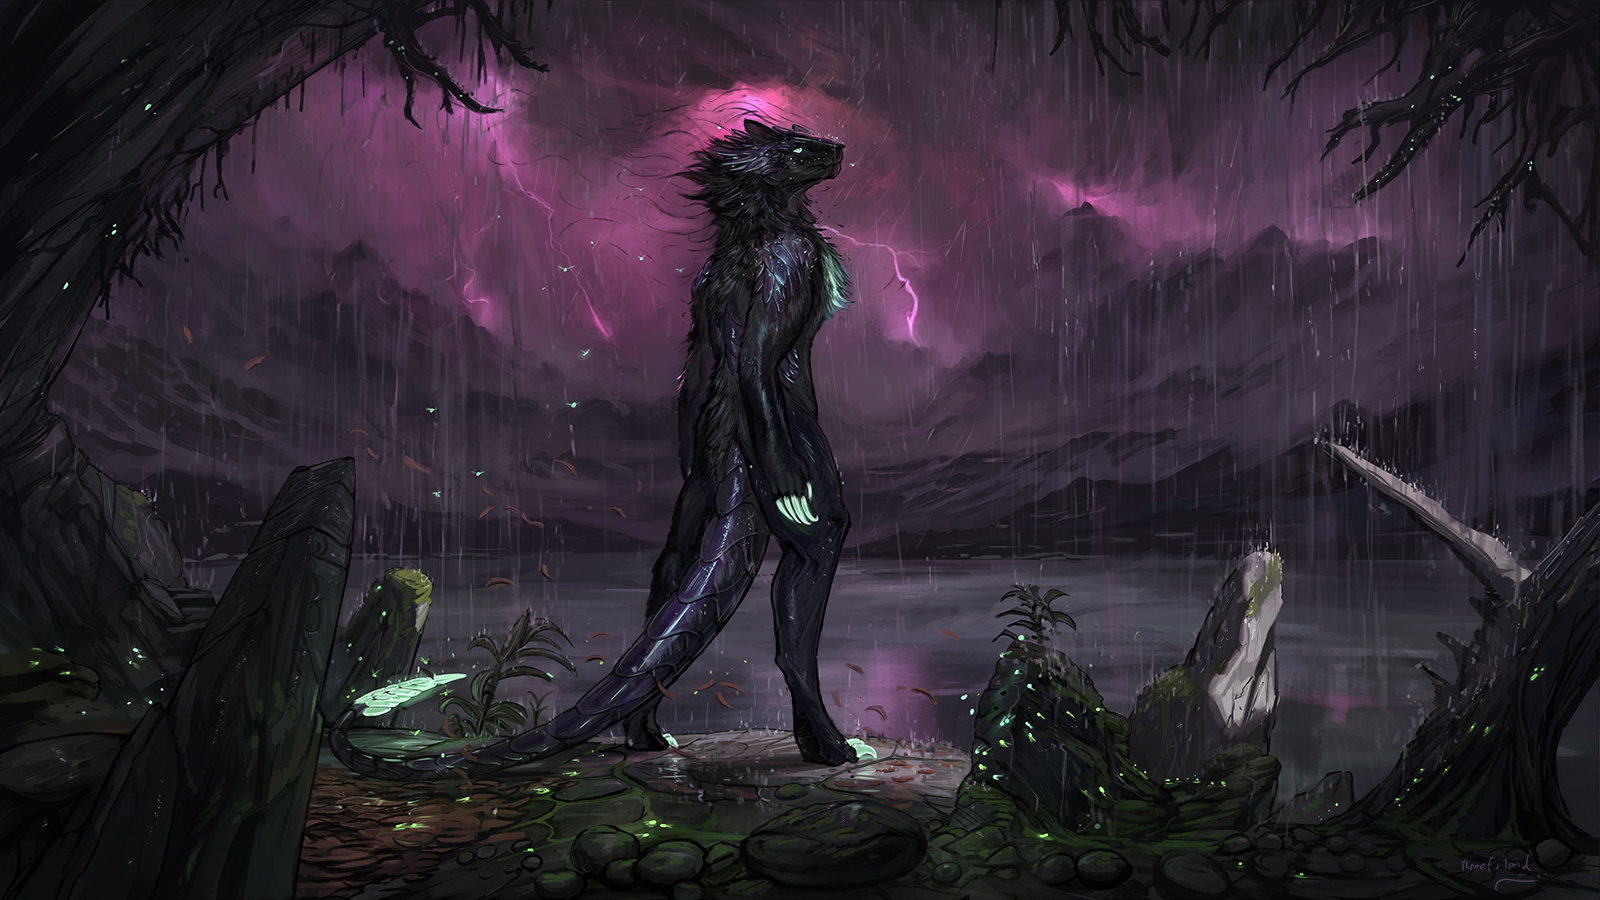 Inside the eye of the storm [commission]